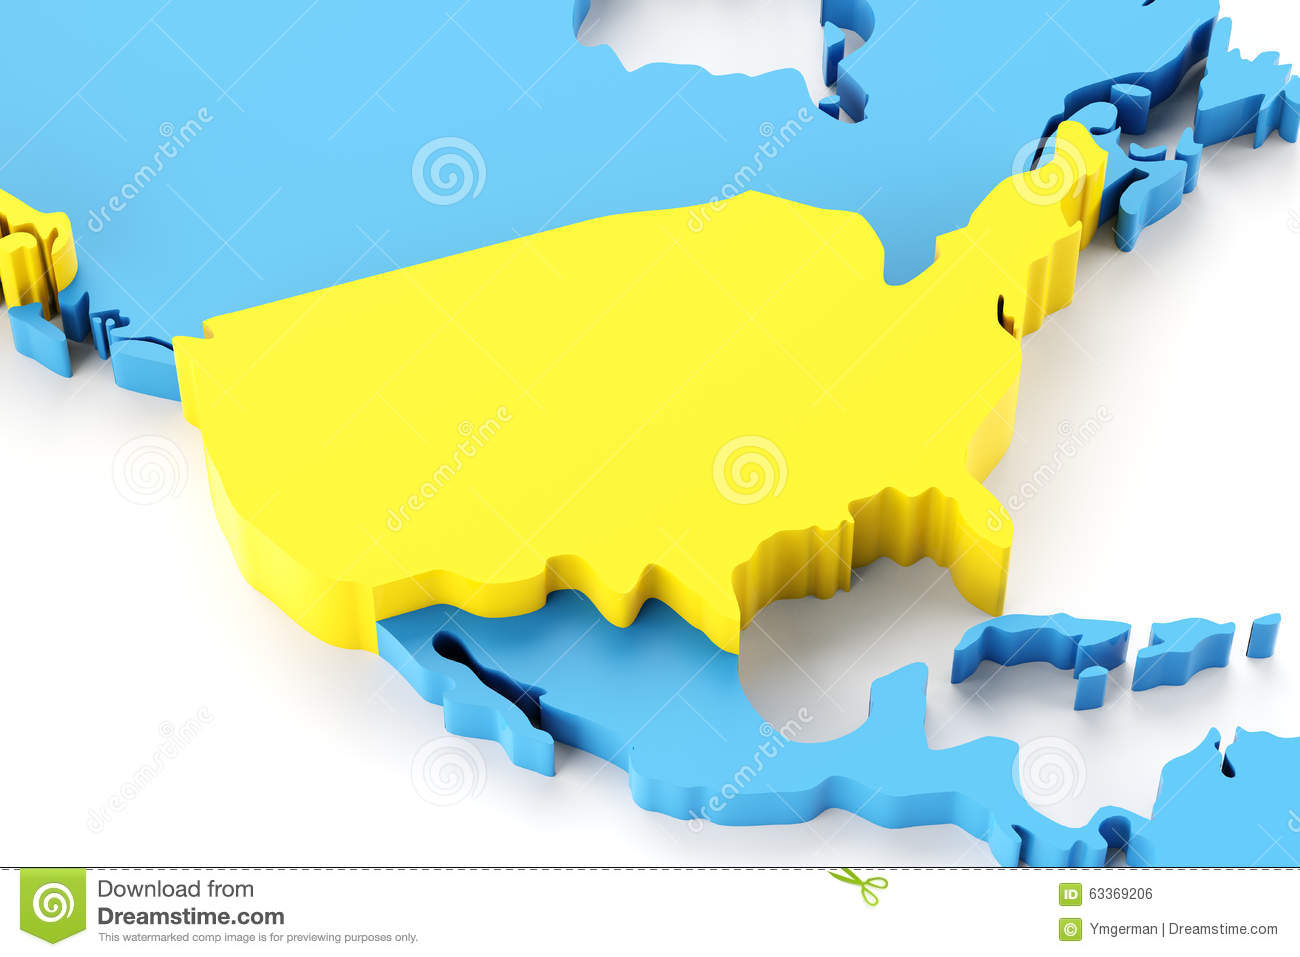 Map Of North America With USA Highlighted Stock Illustration - Download map of north america